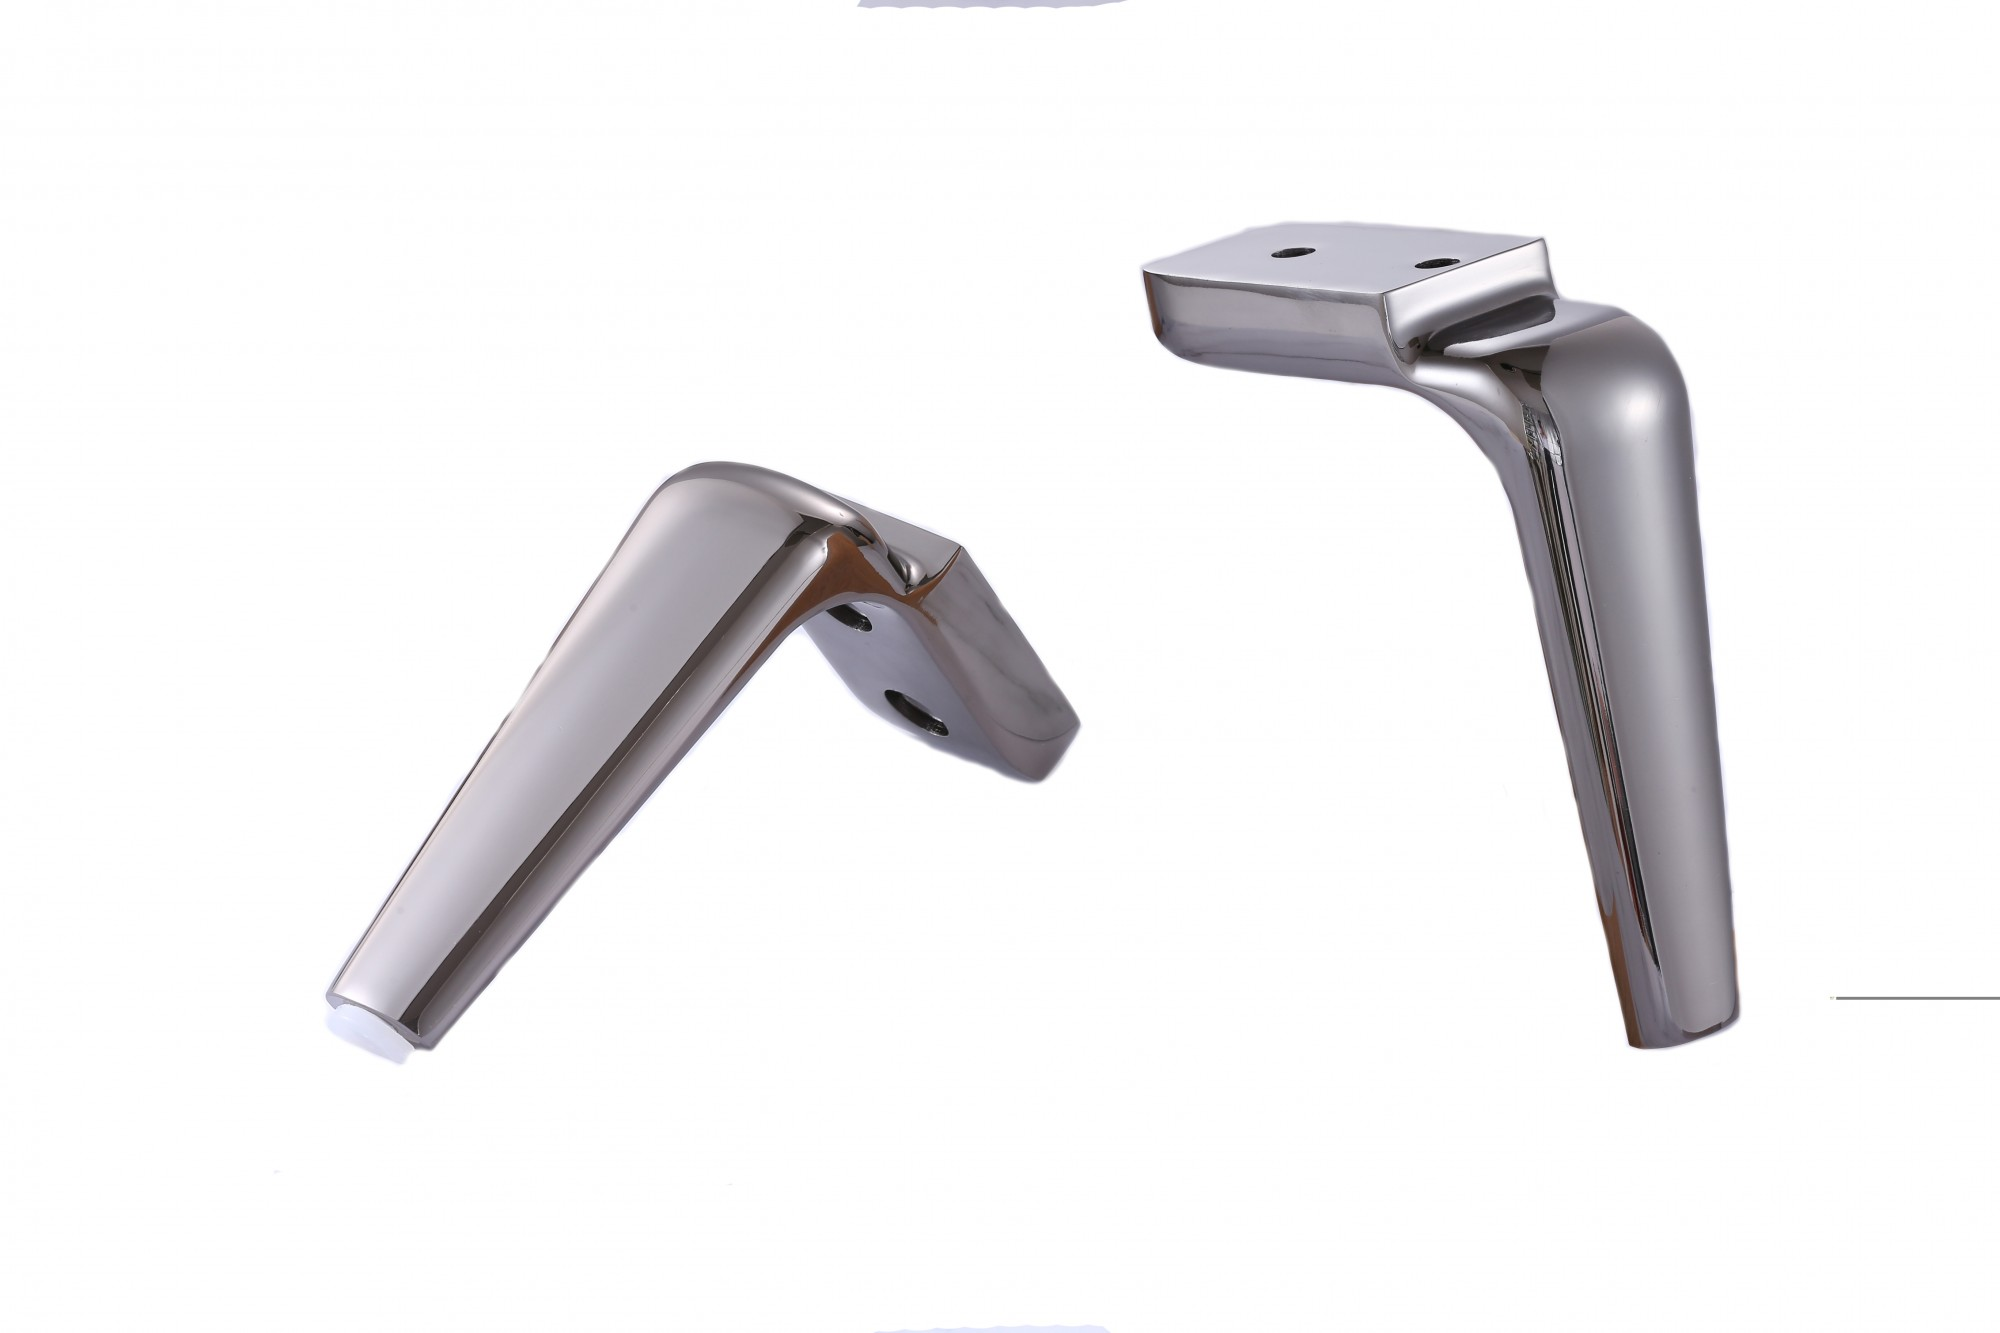 Aluminum furniture legs